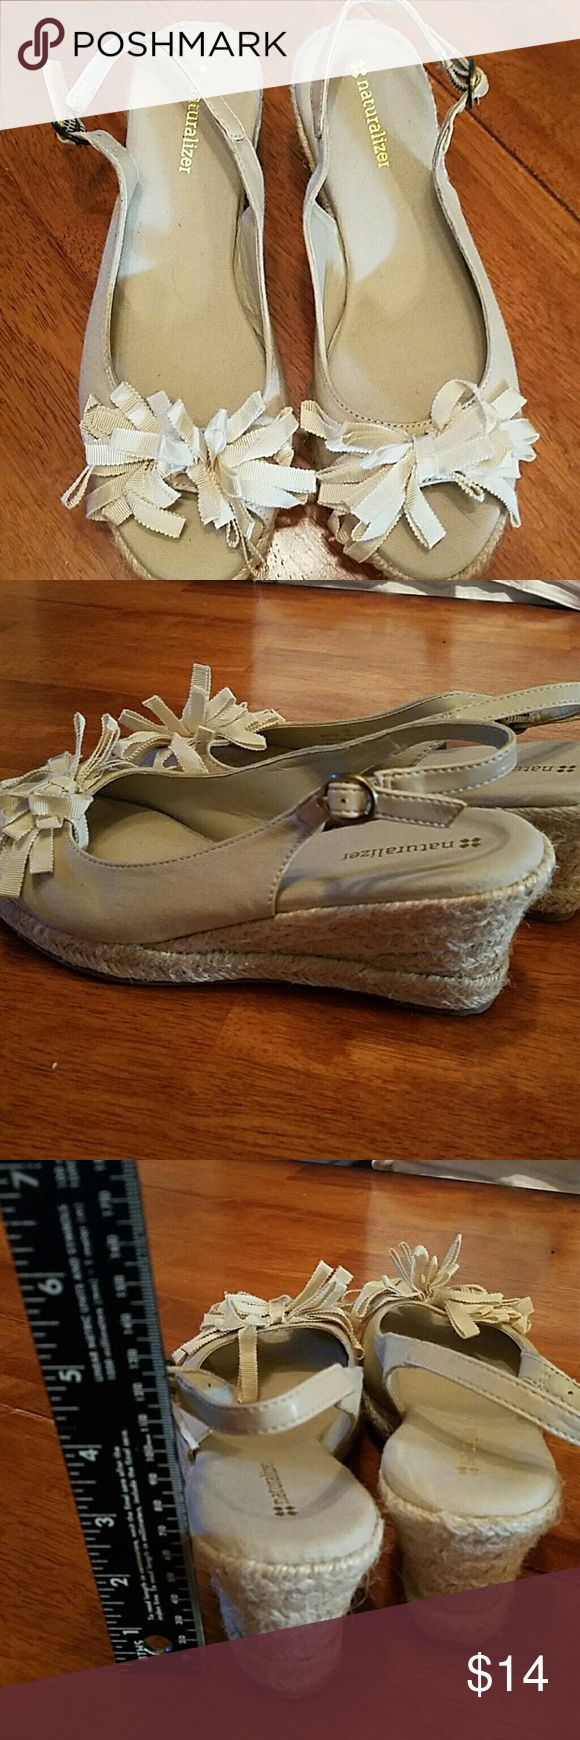 NATURALIZER LADIES  WEDGE SANDAL , LIKE NEW. SZ 7 Tan/ beige color, ladies Naturalizer wedge sandals in excellent condition with minimal wear. This neutral color would go with about anything. They are from a clean non-smoking home Naturalizer Shoes Sandals